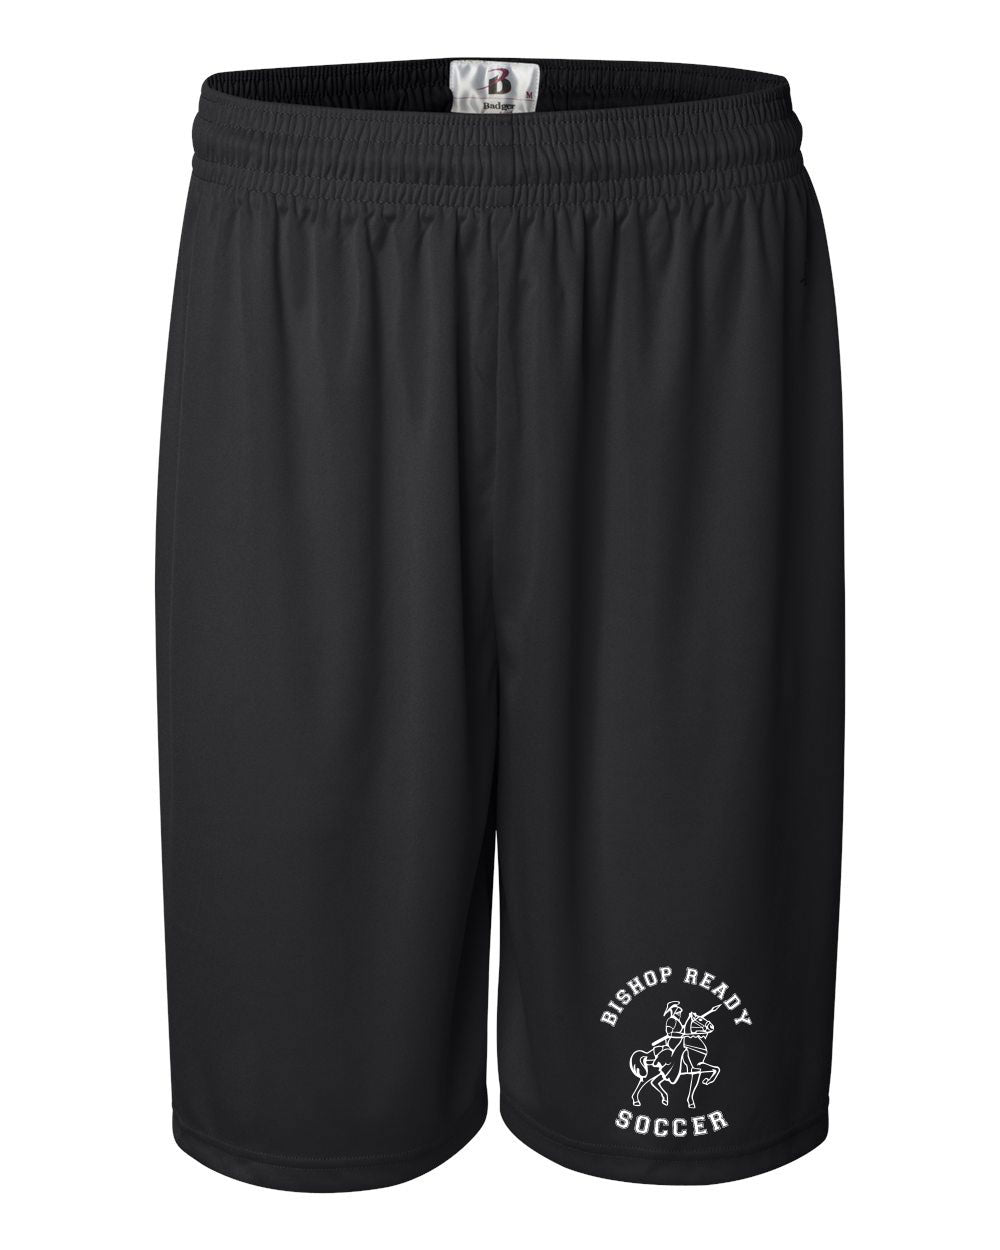 Bishop Ready Soccer Shorts